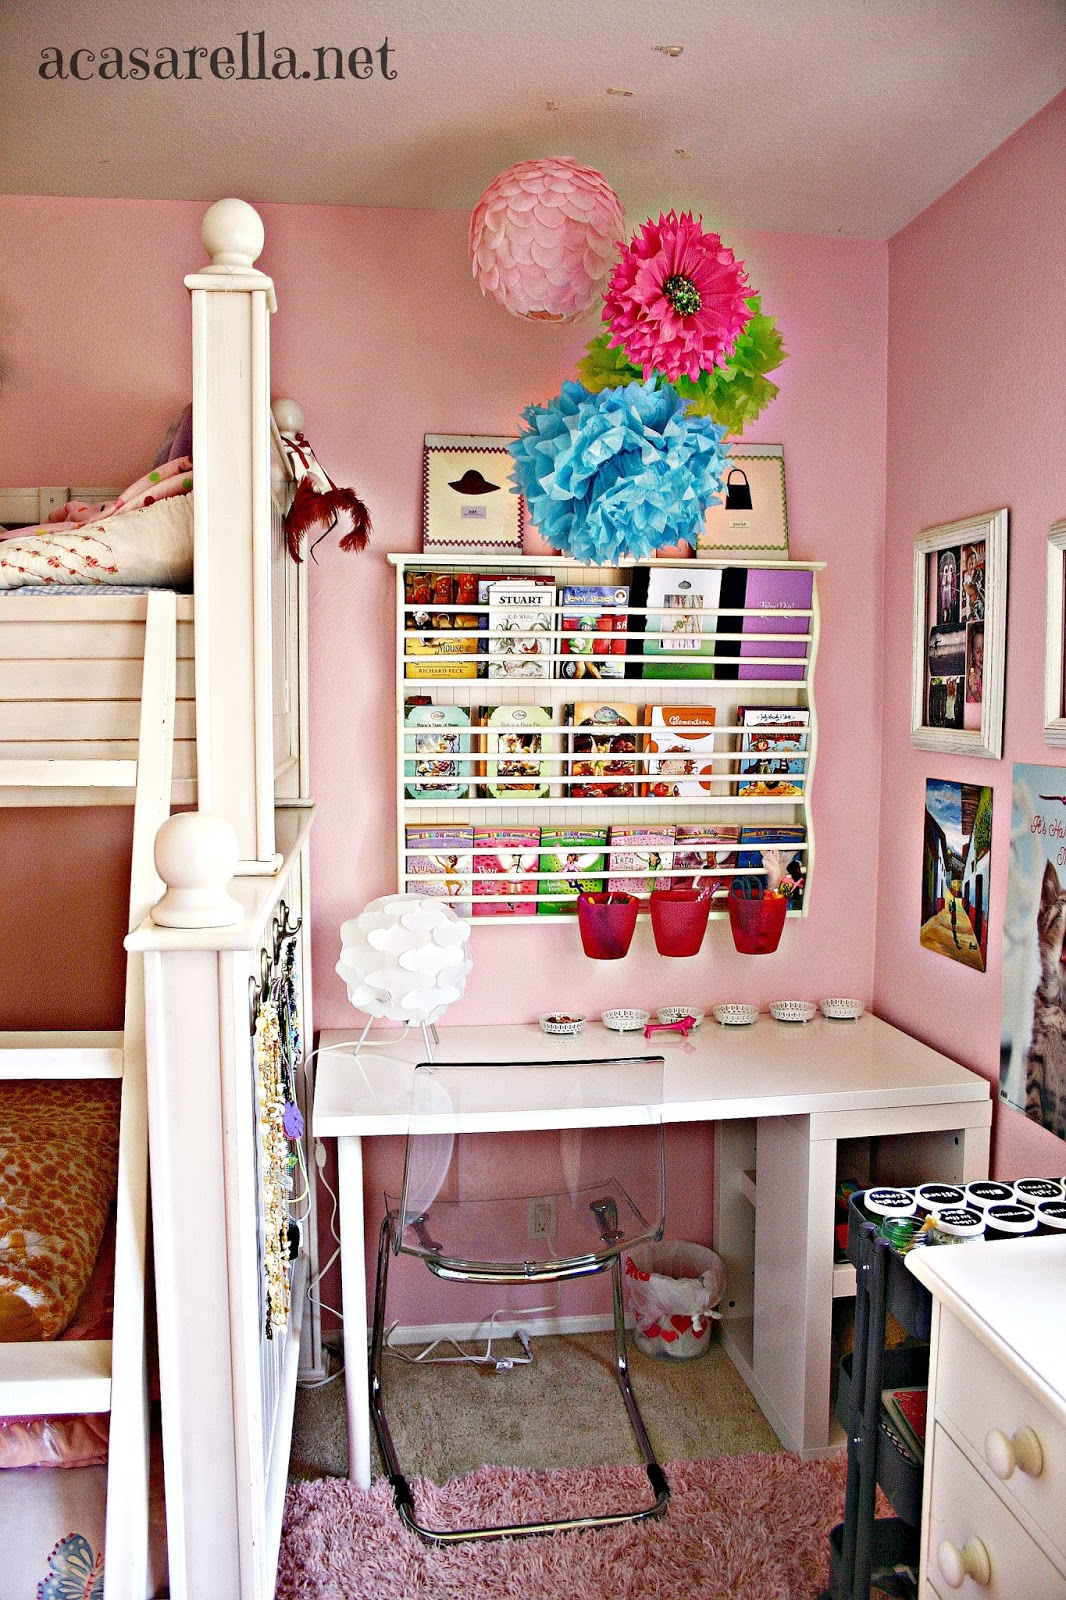 Small Space Makeover: From Reading Nook to Desk Space | \'A Casarella